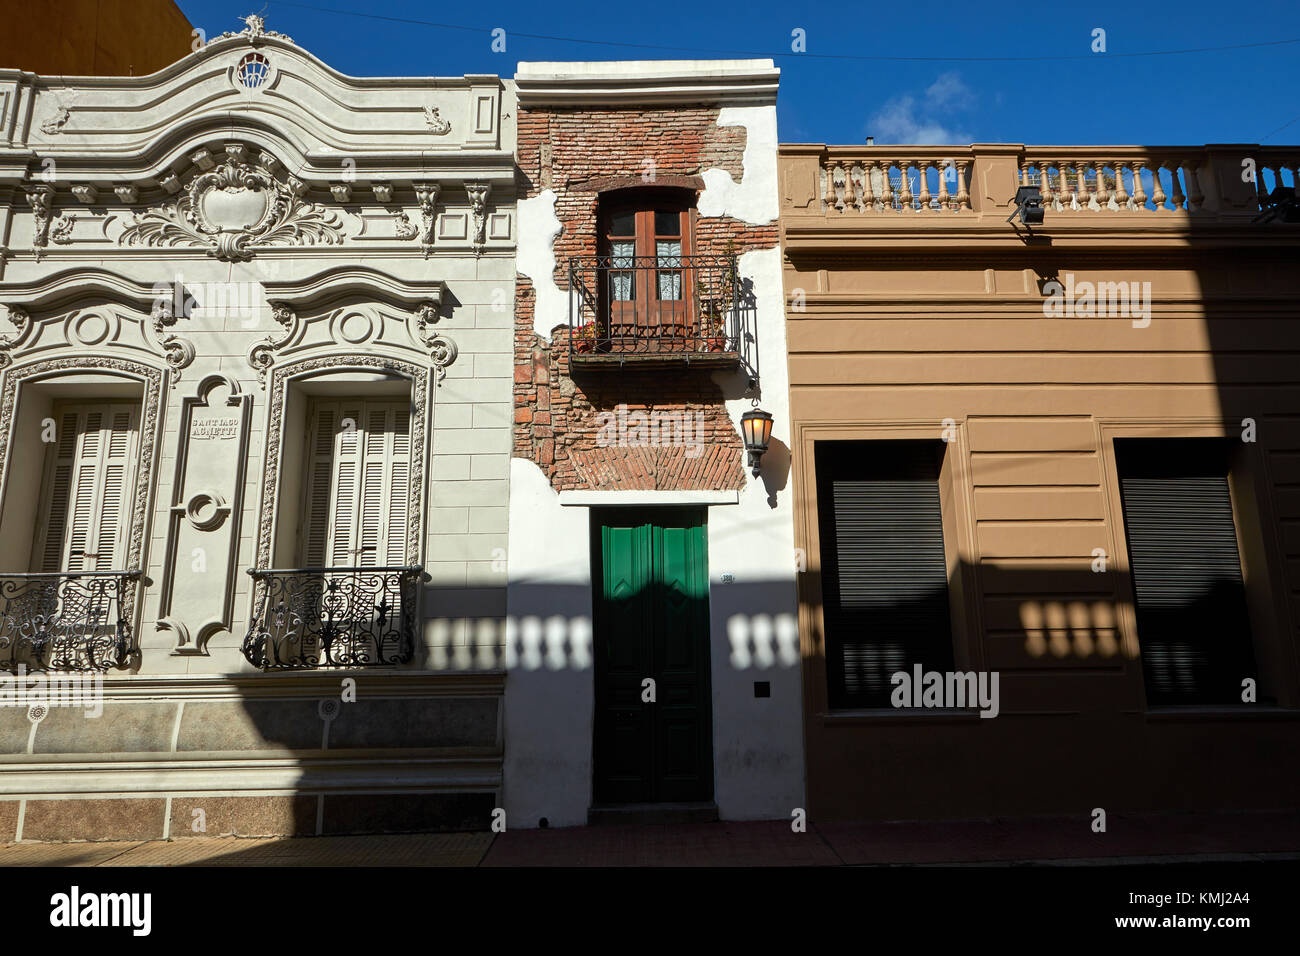 Casa Minima (narrowest house in Buenos Aires), San Telmo, Buenos Aires, Argentina, South America Stock Photo